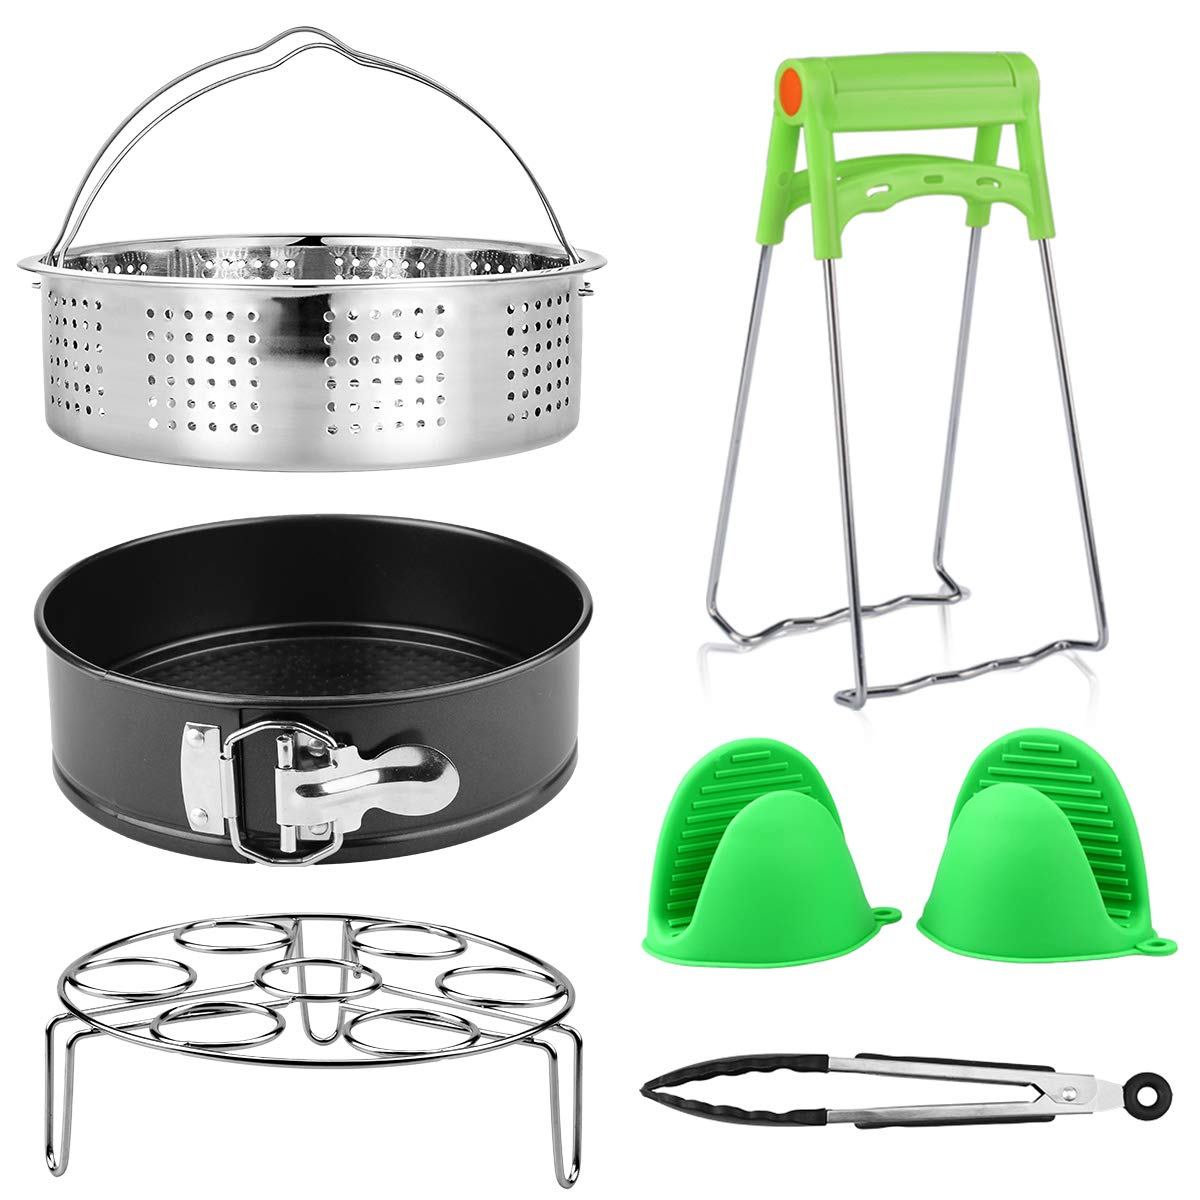 Pressure Cookers Accessories Set For Instant Pot 5 Aiduy 6pcs Pressure Cooker Accessories Set Kitchen Tongs Egg Steamer Rack Dish Clip Steamer Basket 8 Quart Silicone Oven Mitts 6 Non Stick Springform Pan